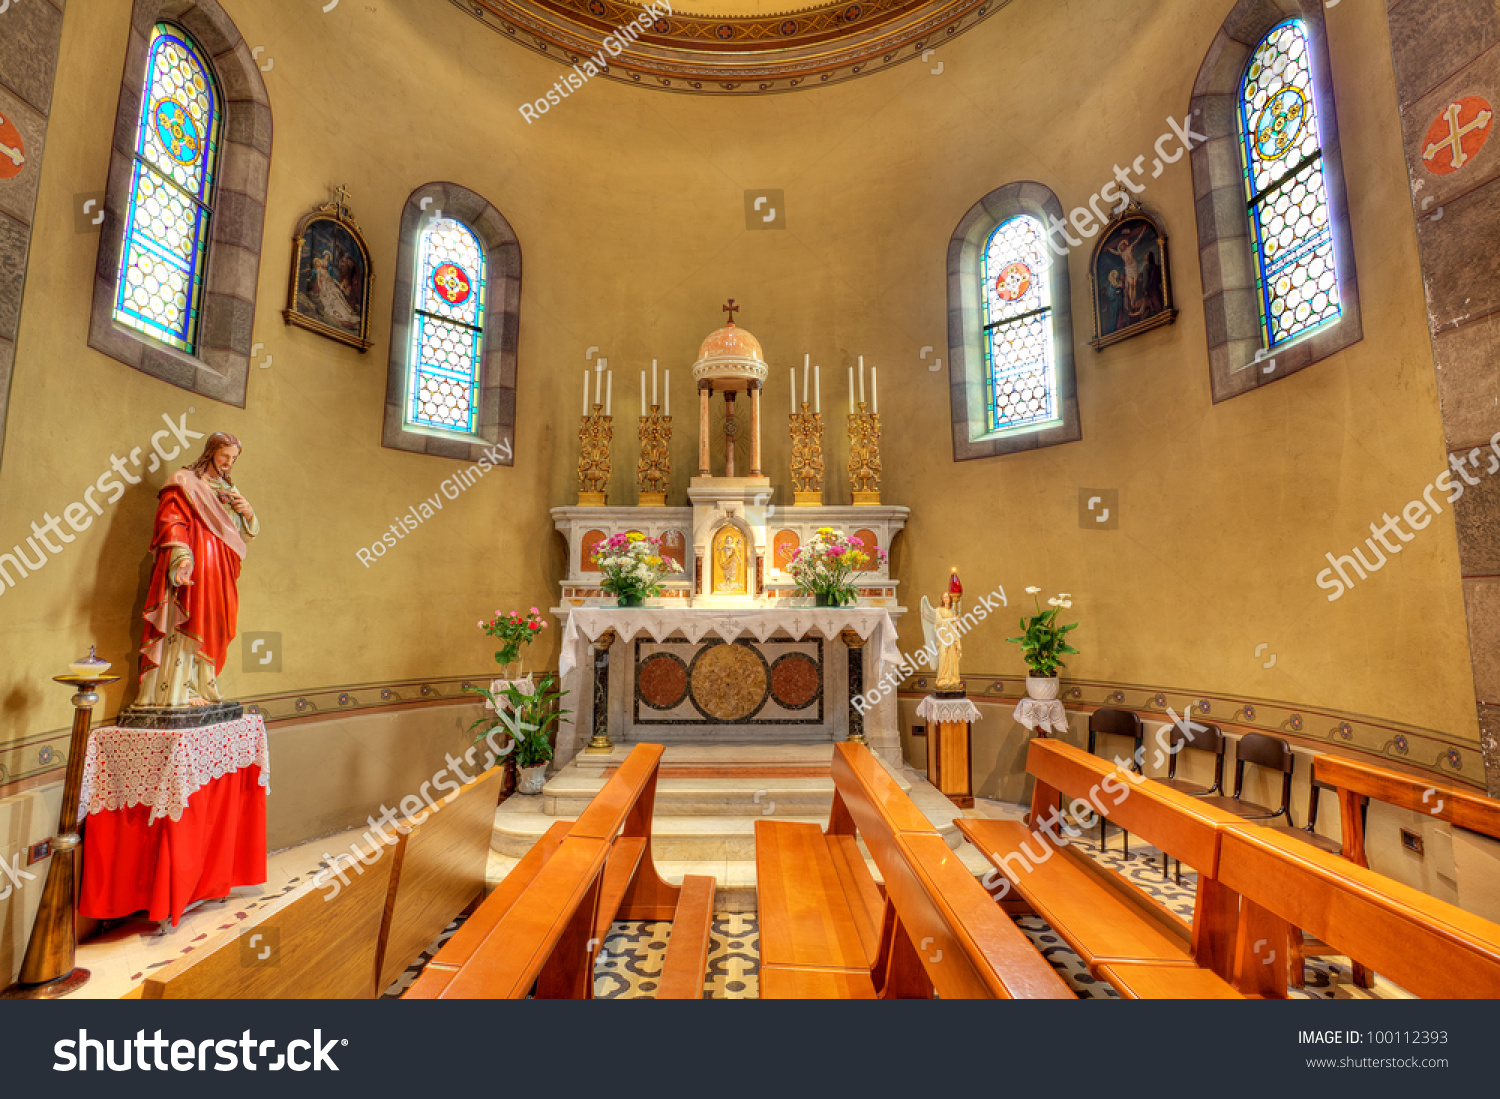 Statue Of Jesus And Altar As Part Of Interior View Of Catholic Church In Alba Northern Italy